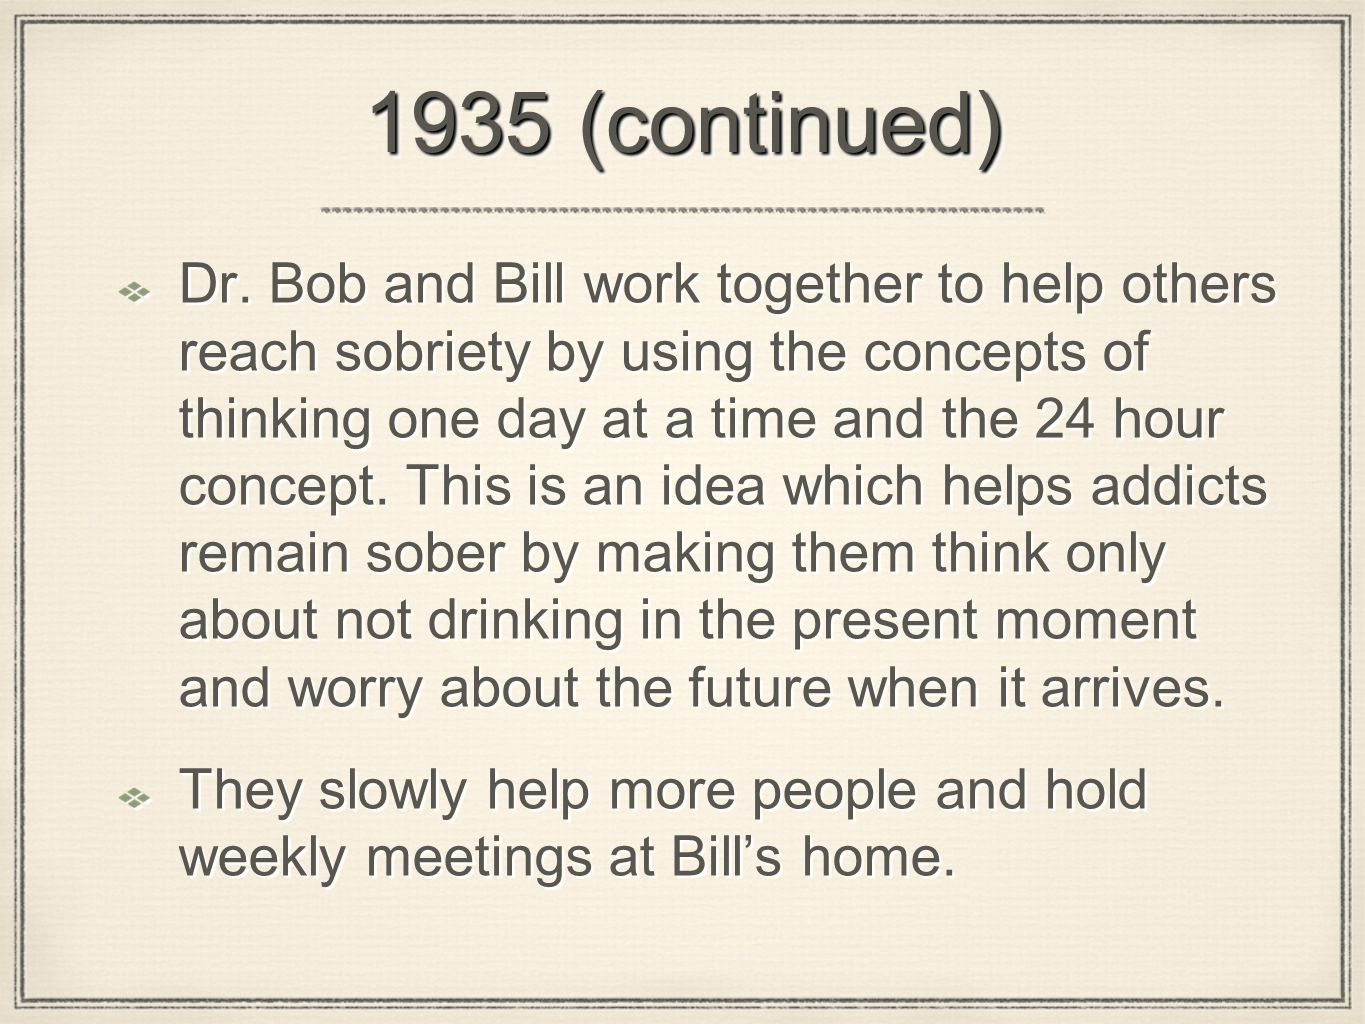 1935 (continued) Dr. Bob and Bill work together to help others reach sobriety by using the concepts of thinking one day at a time and the 24 hour conc